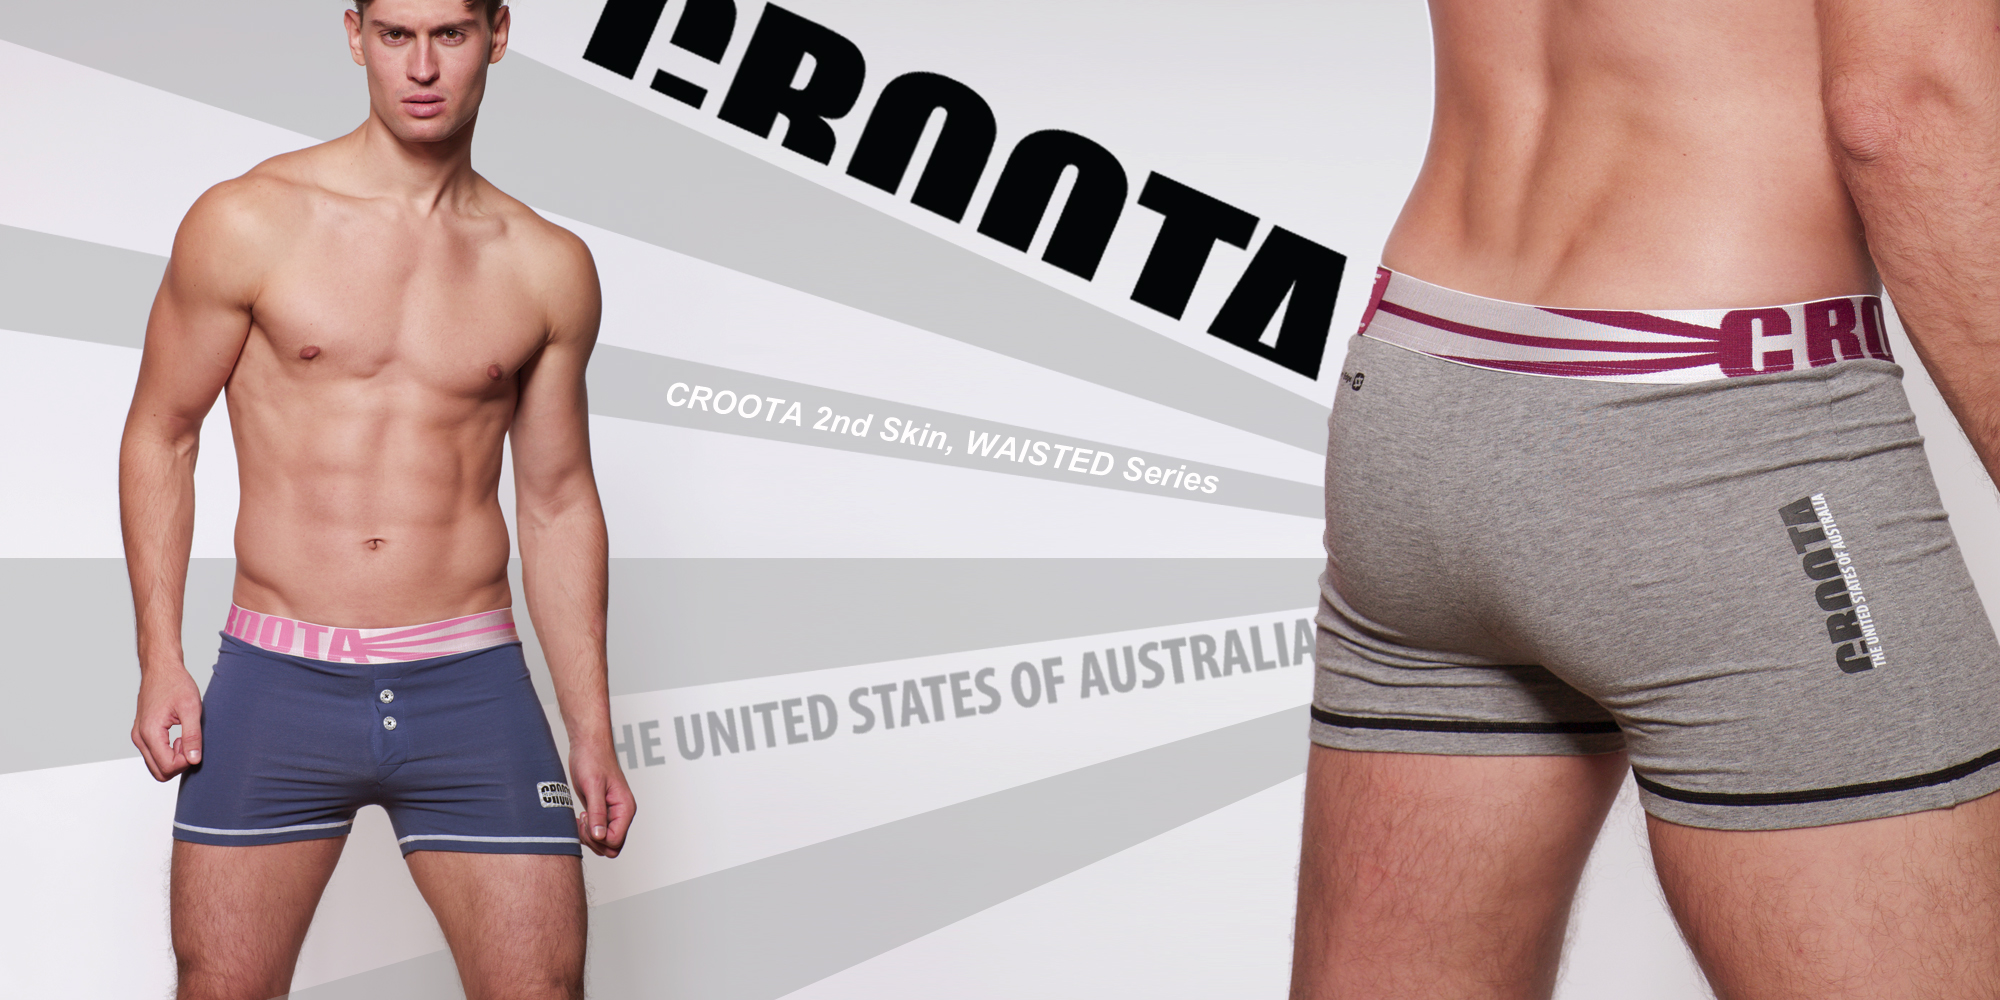 """Croota Underwear Fights To """"Save The AS5"""" In New Campaign"""